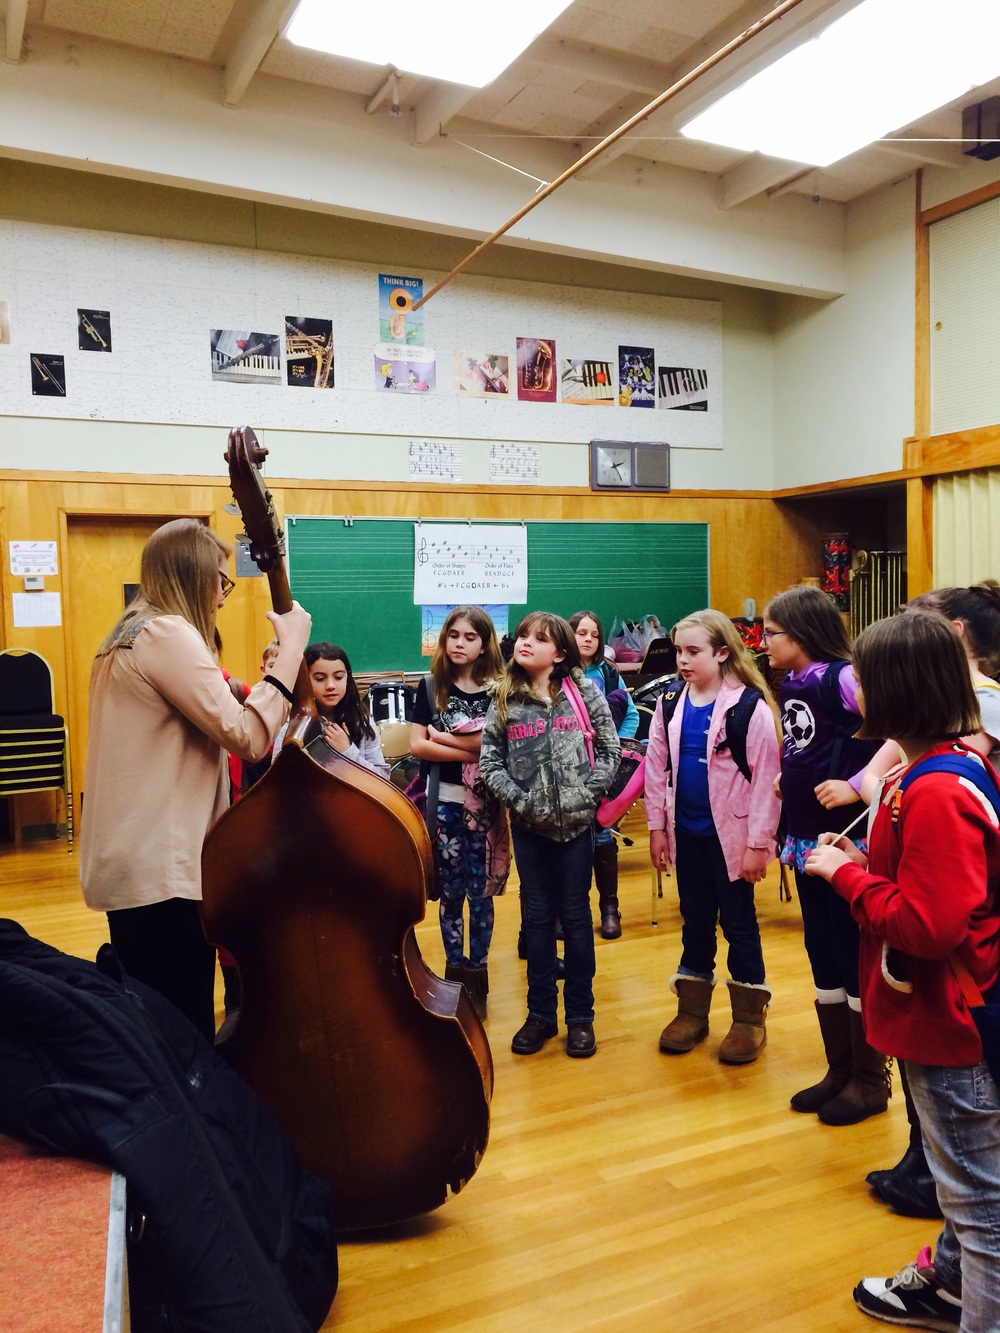 Katie Blomarz has been helping us out on upright bass, and she had quite the fan club at a school performance in Red Bluff, CA.